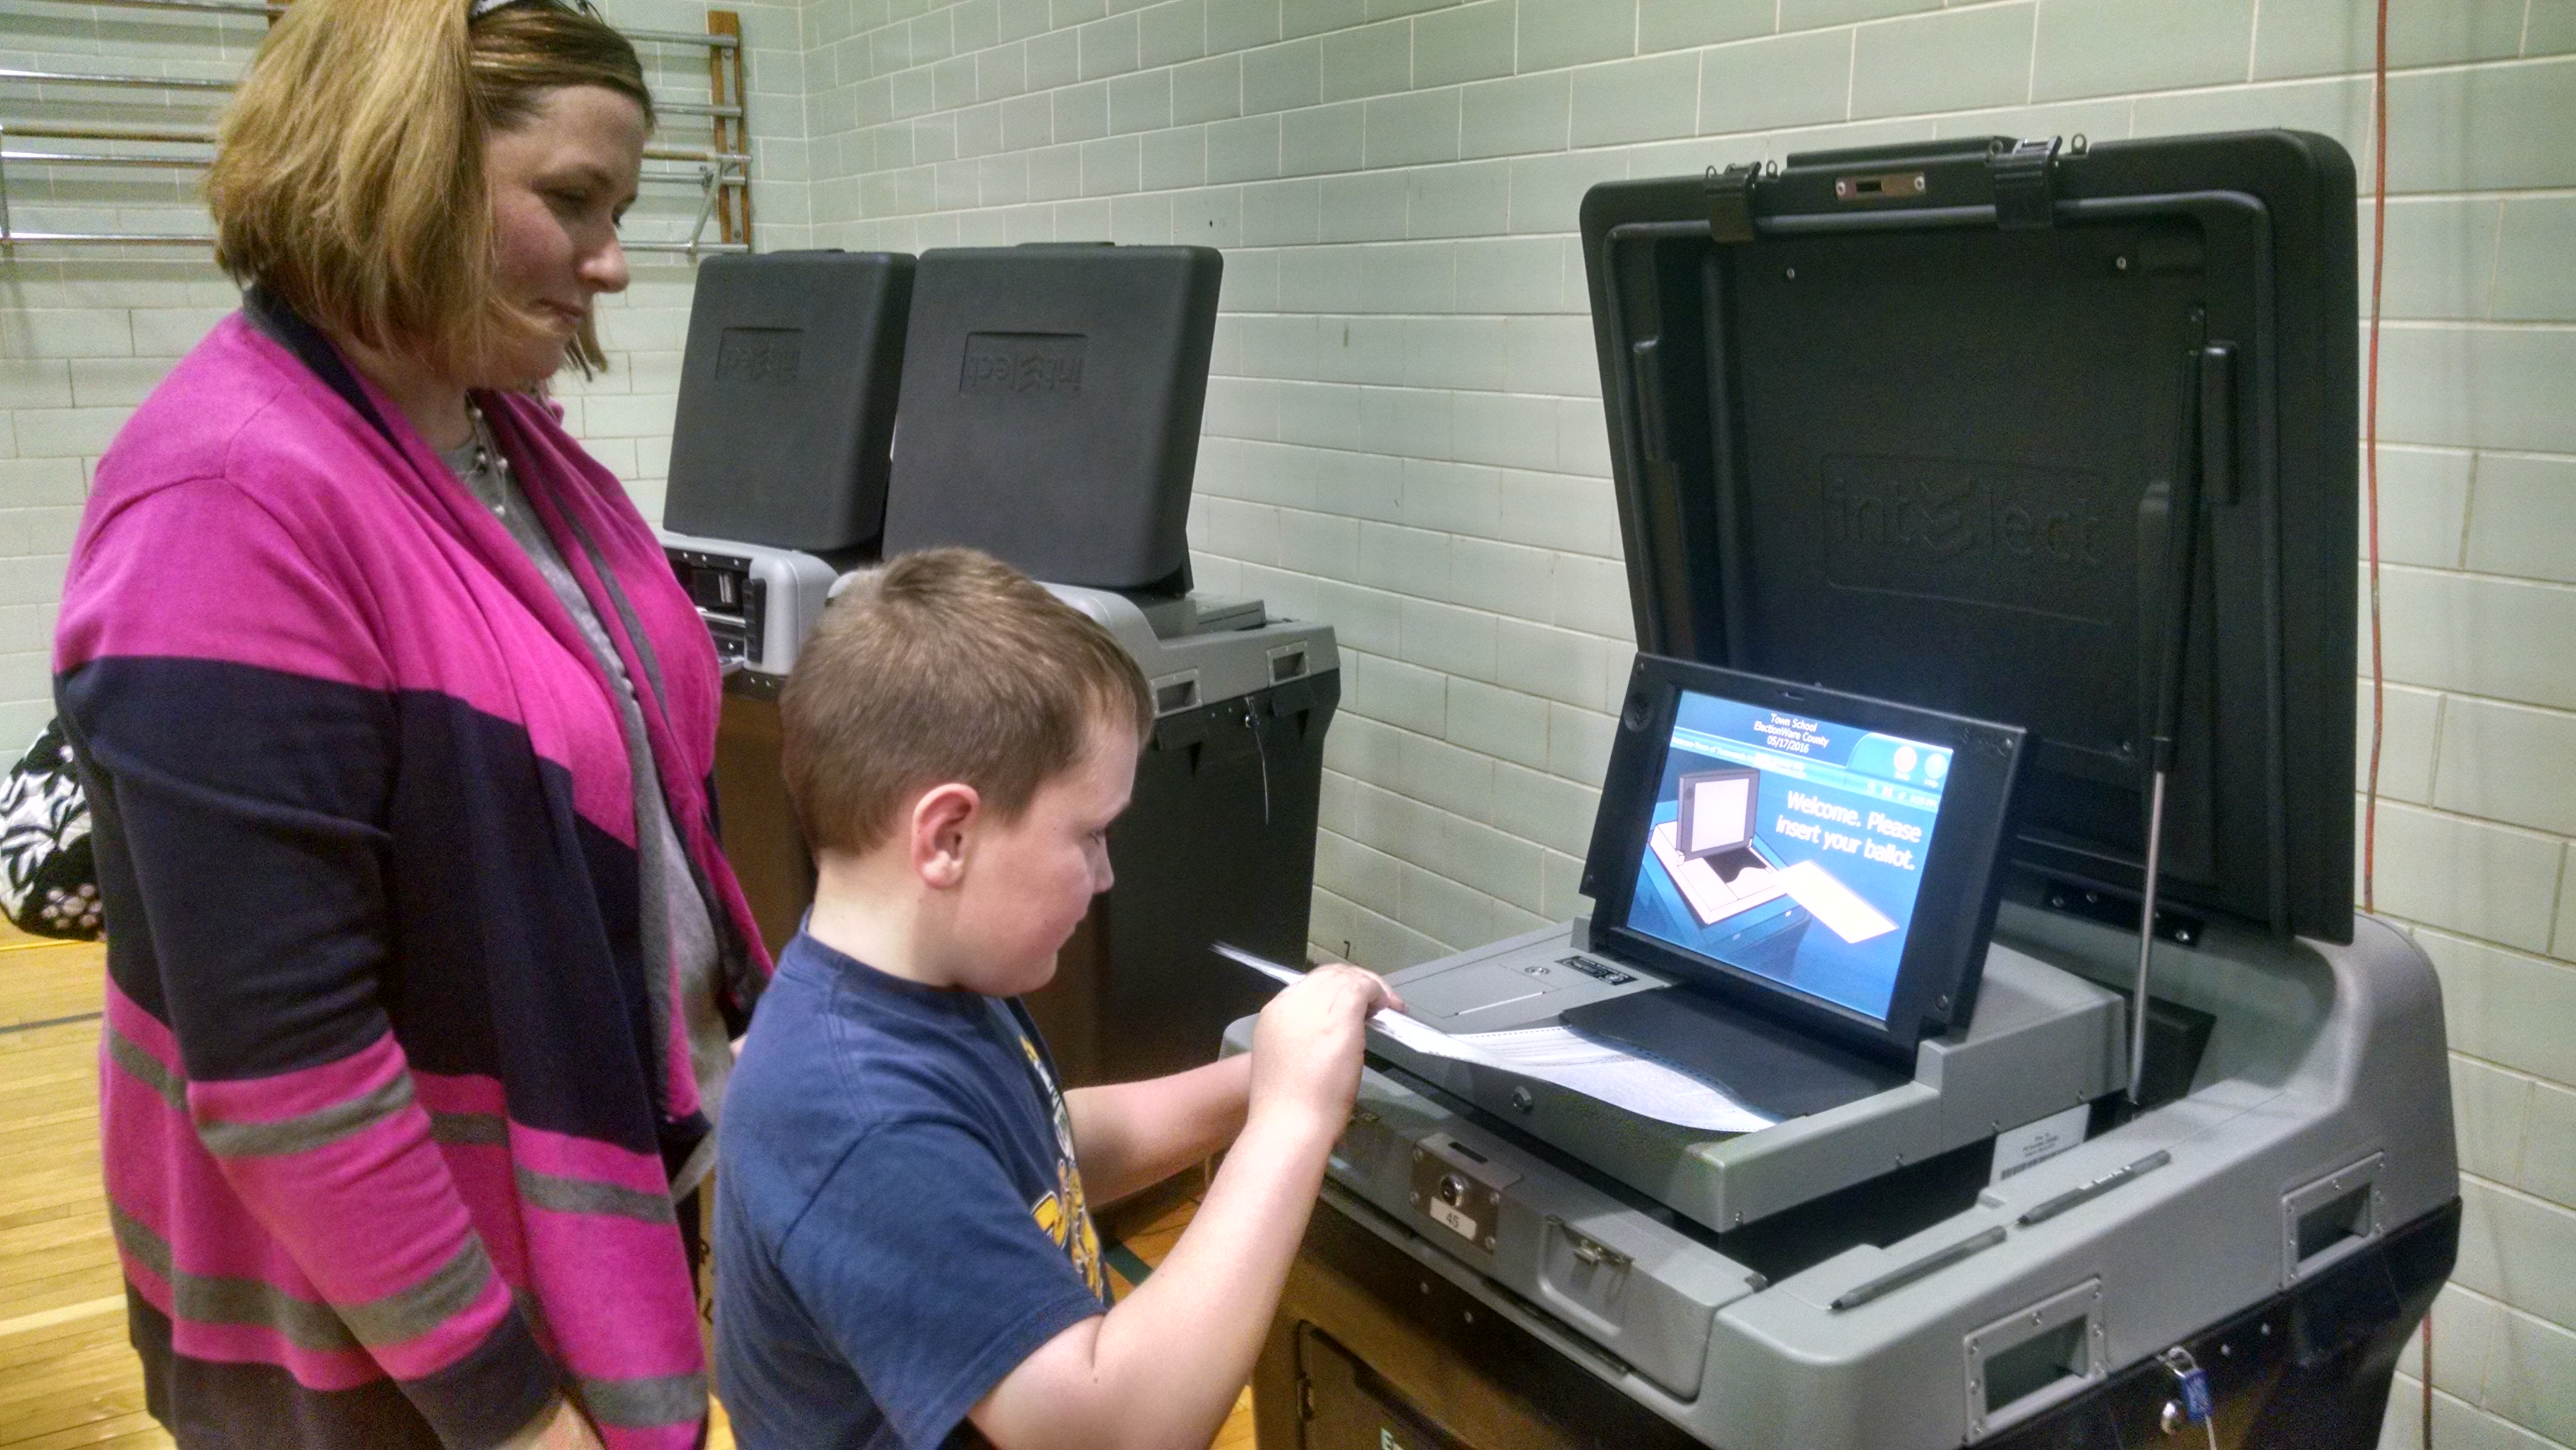 Katie Struckmann, a Ken-Ton teacher, and her son Griffin, 6, cast ballot in Tuesday's budget vote and board election.